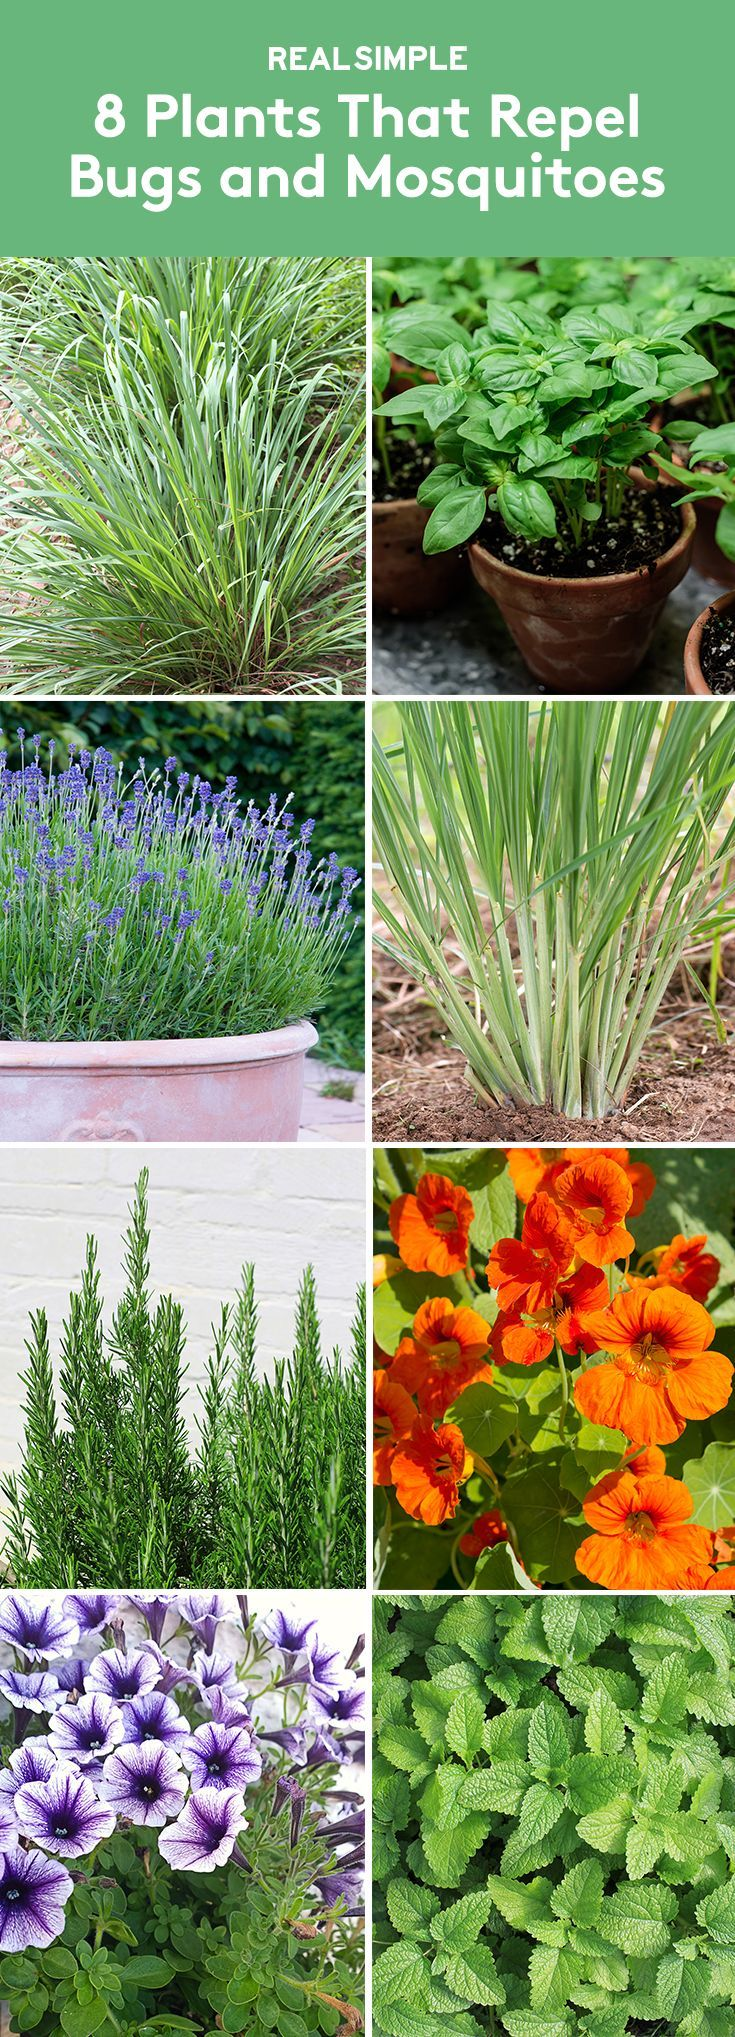 inspiration house plants that repel bugs. 8 Plants That Repel Bugs and Mosquitoes  Grow these in your garden or plant them Gardens Yards